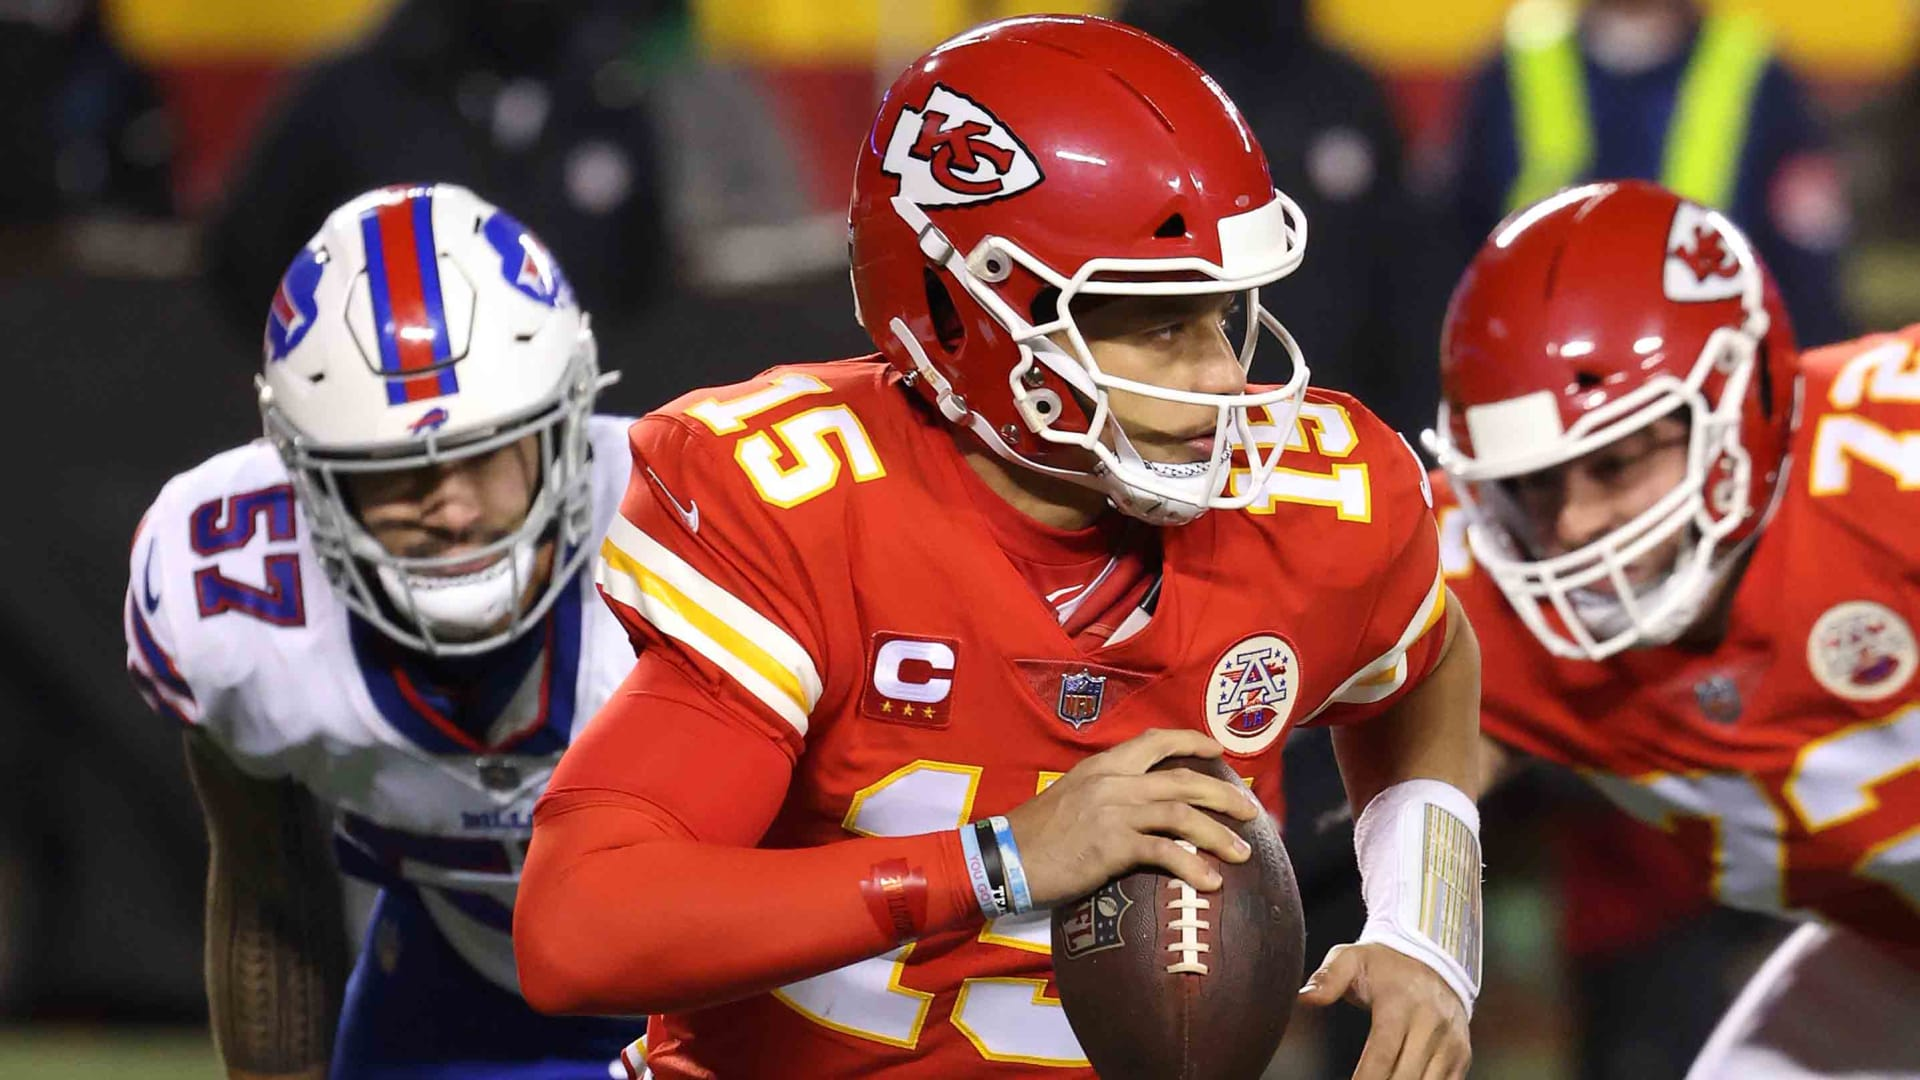 Patrick Mahomes, No. 15 of the Kansas City Chiefs, scrambles with the ball in the first quarter against the Buffalo Bills during the AFC Championship game at Arrowhead Stadium on January 24, 2021 in Kansas City, Missouri.